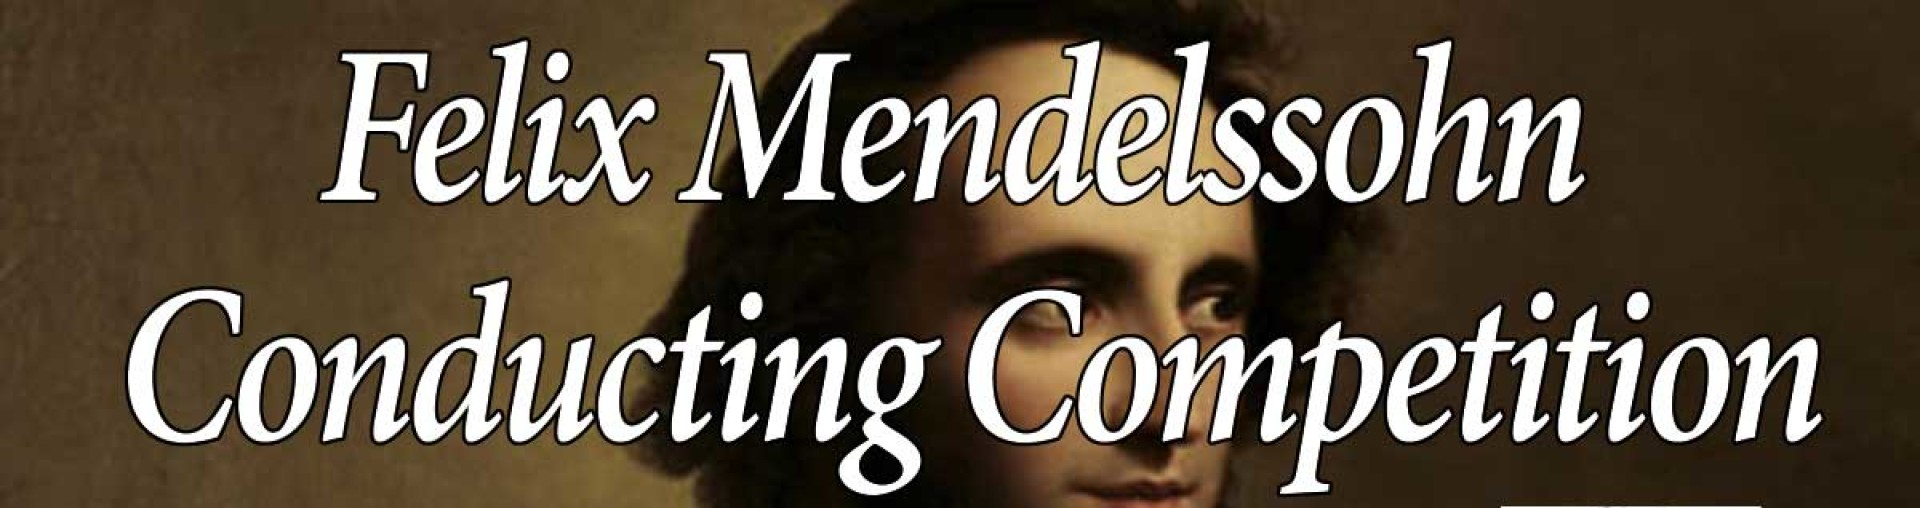 Felix Mendelssohn Conducting Competition